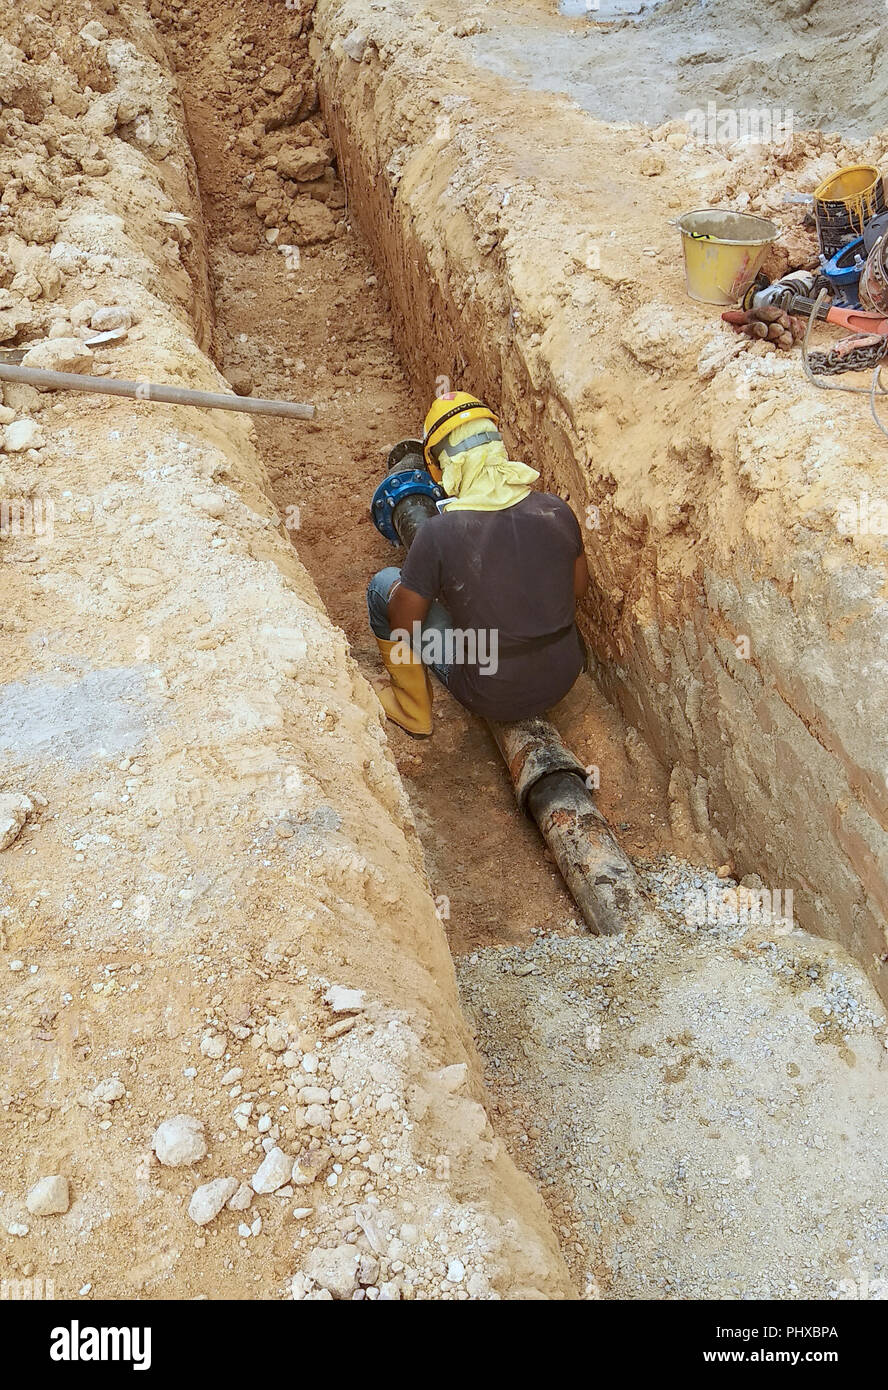 Underground utility and services pipe laid by workers in the trenches at the construction site. Installation of pipe joint and elbow in progress. - Stock Image